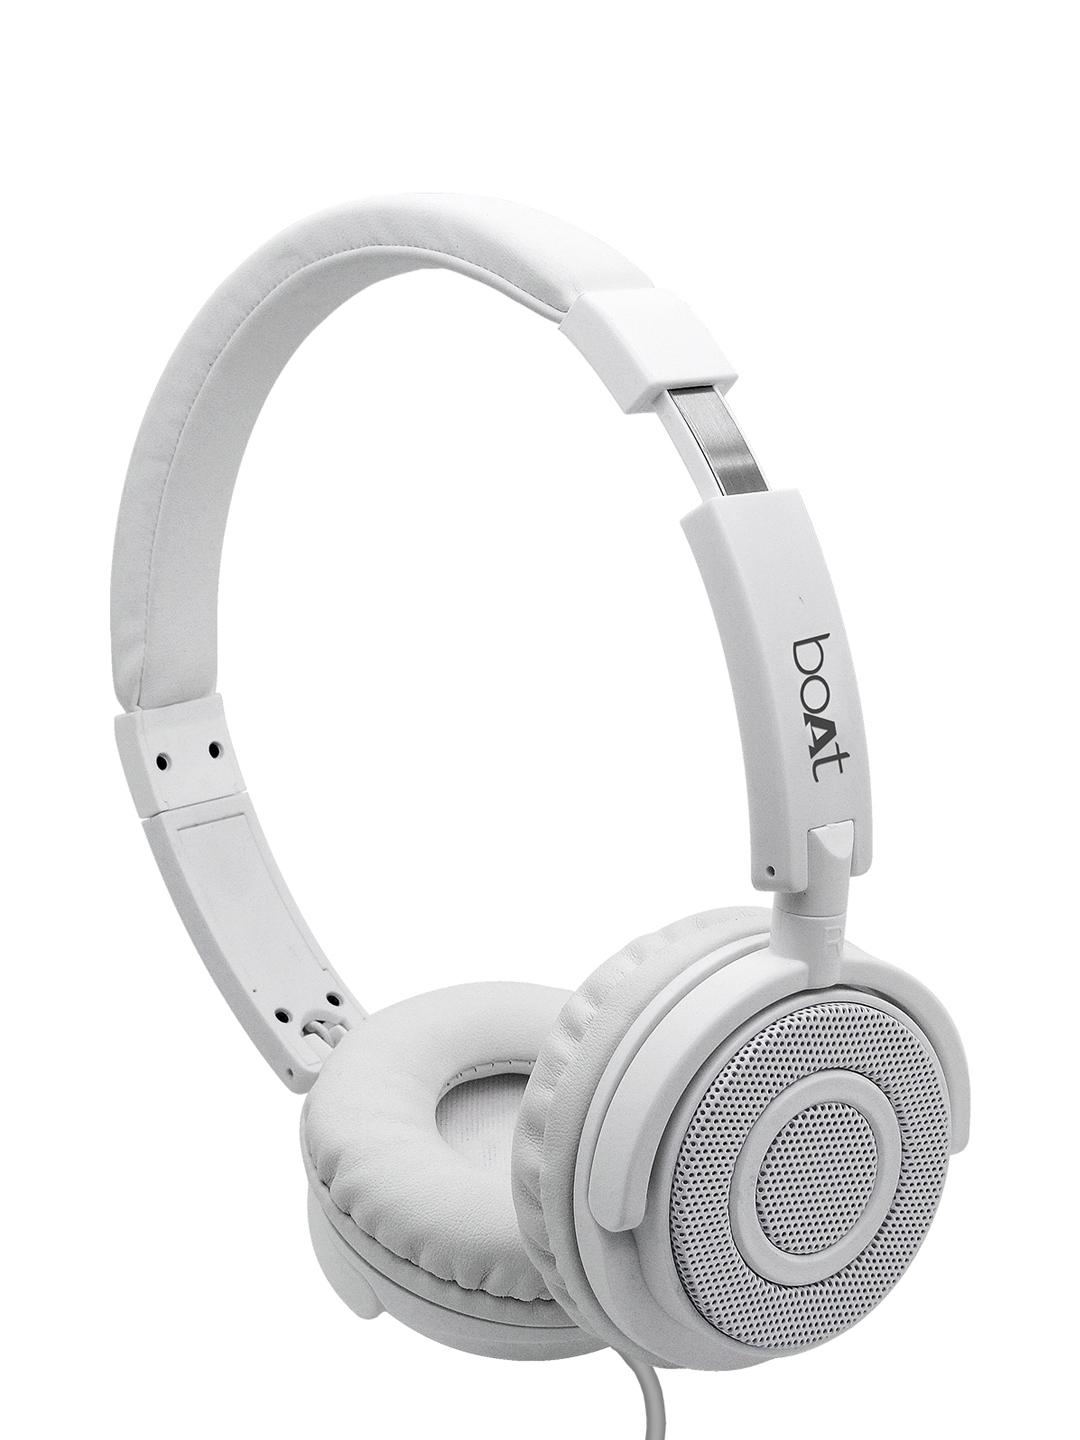 boAT White BassHeads 900 Wired Headset with Mic 8904130842733